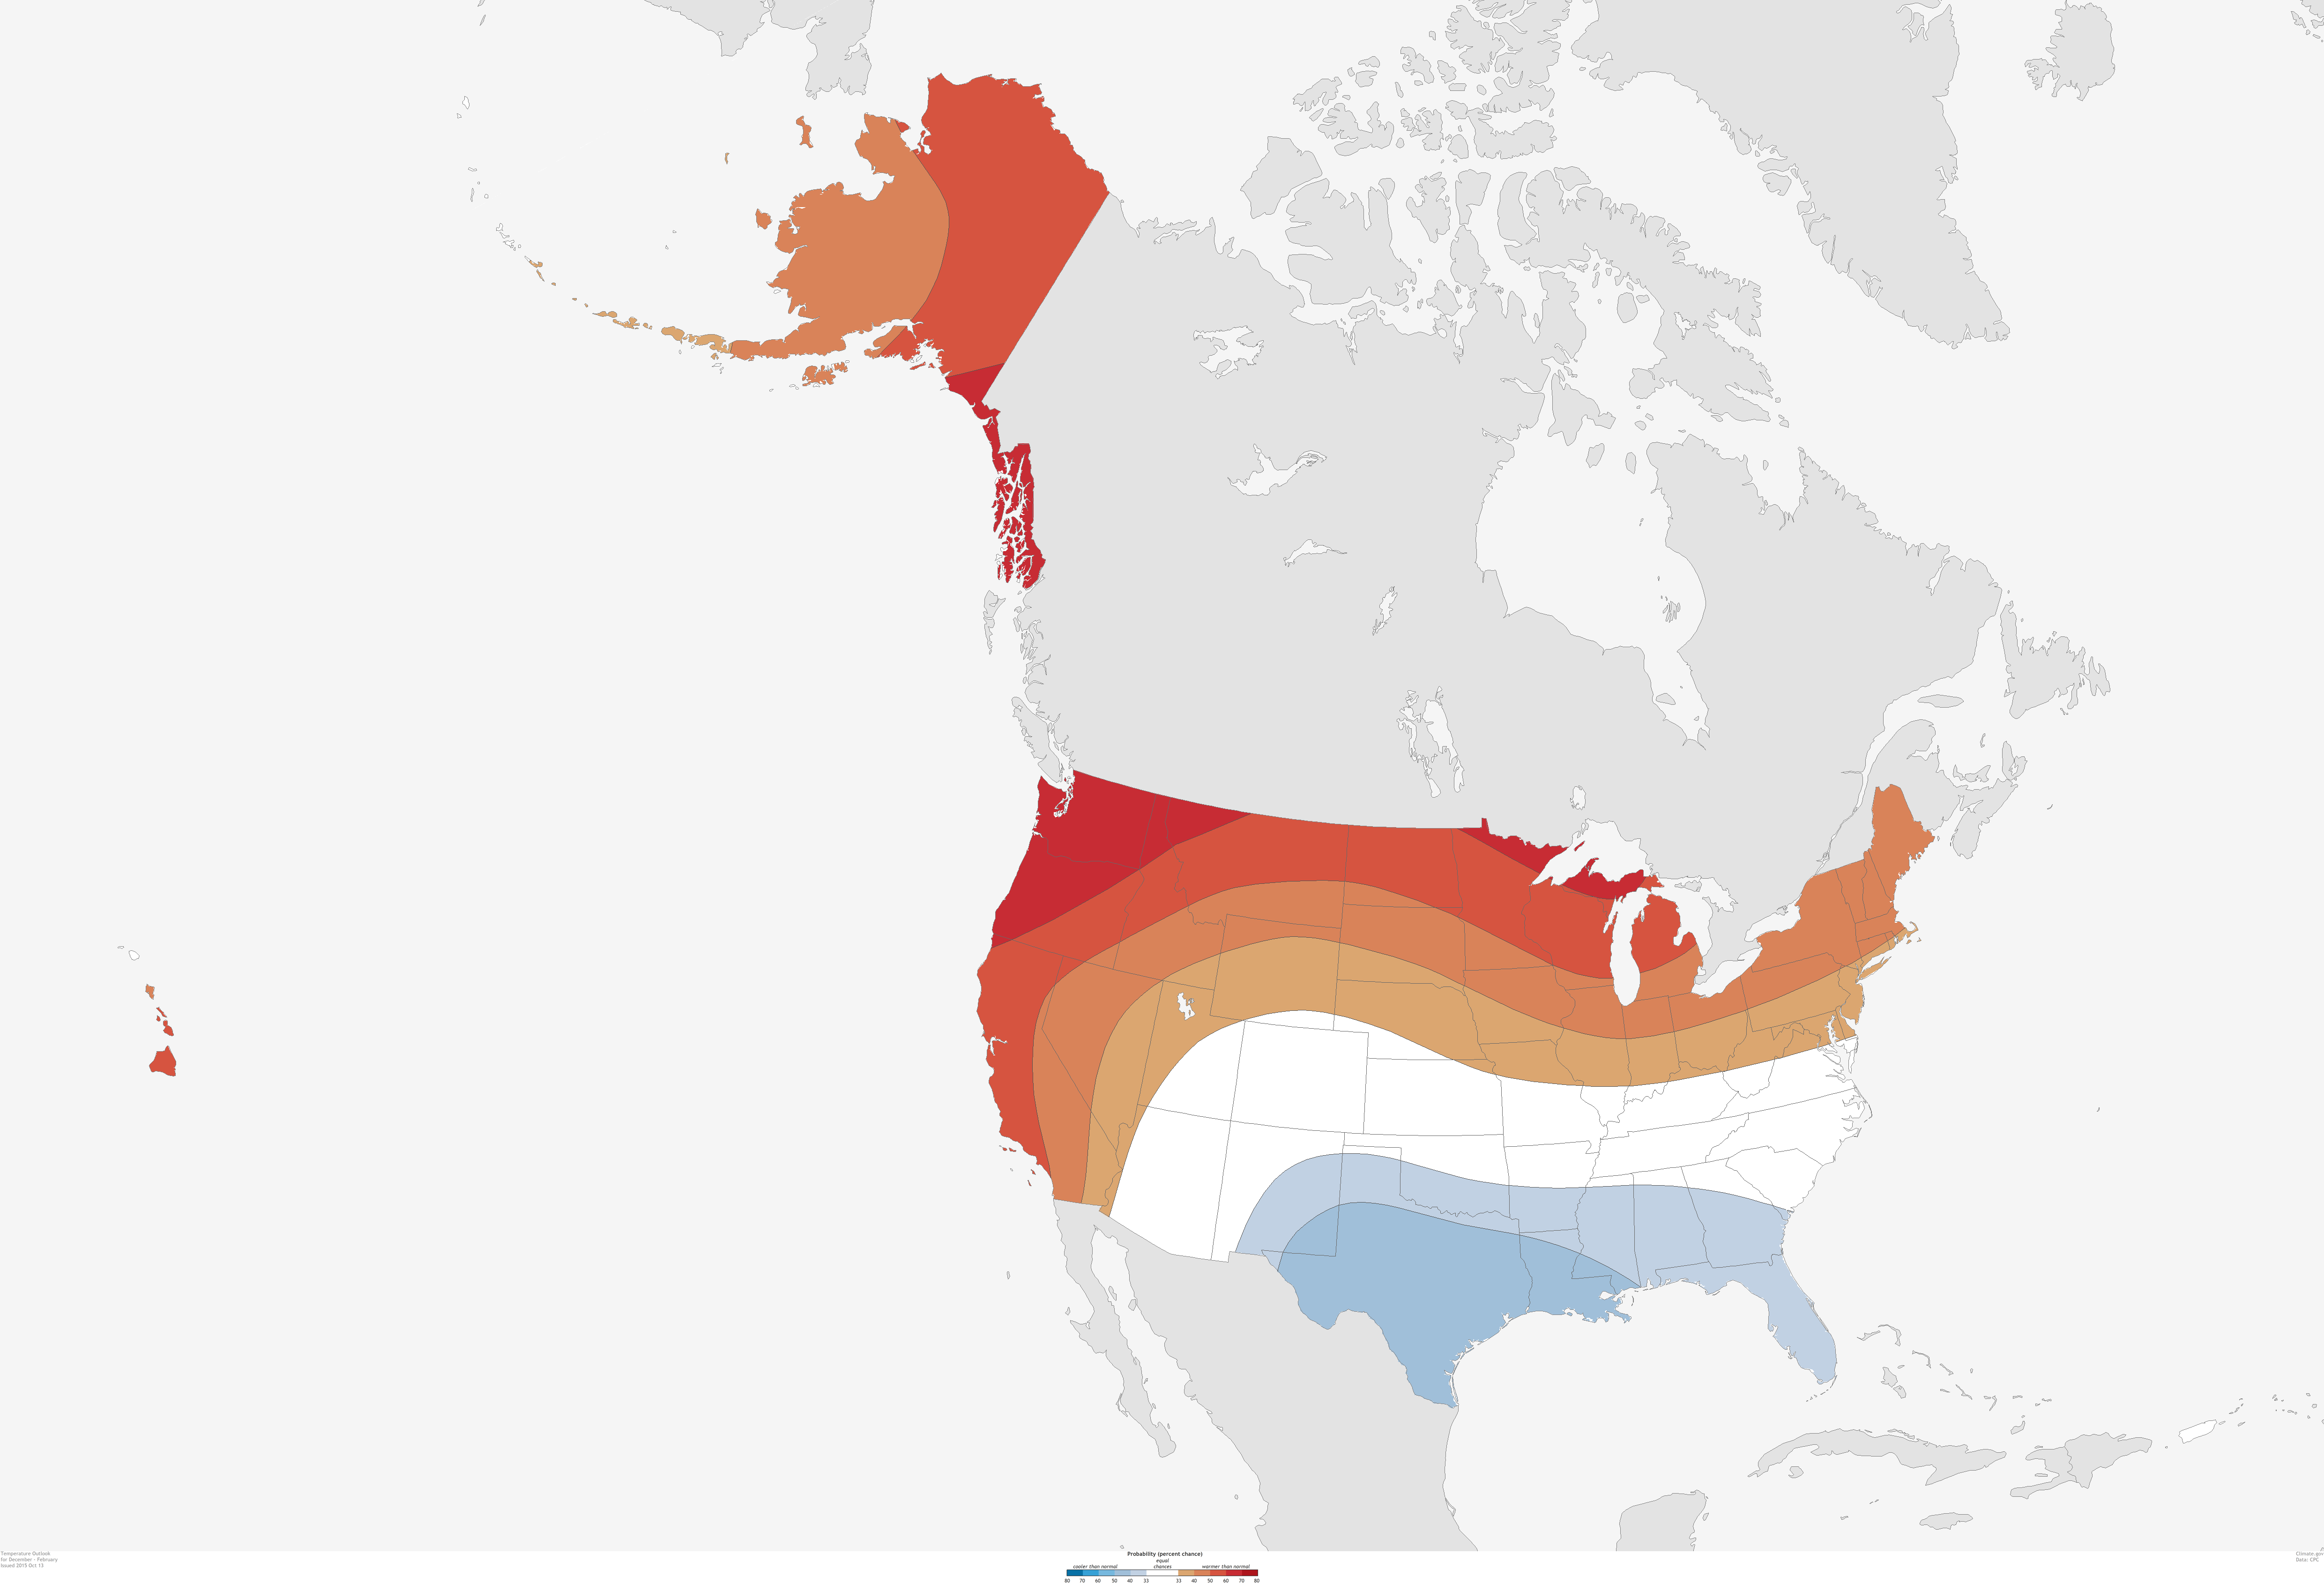 What To Expect This Winter NOAAs Outlook Reveals What Conditions - Map alaska superimposed us